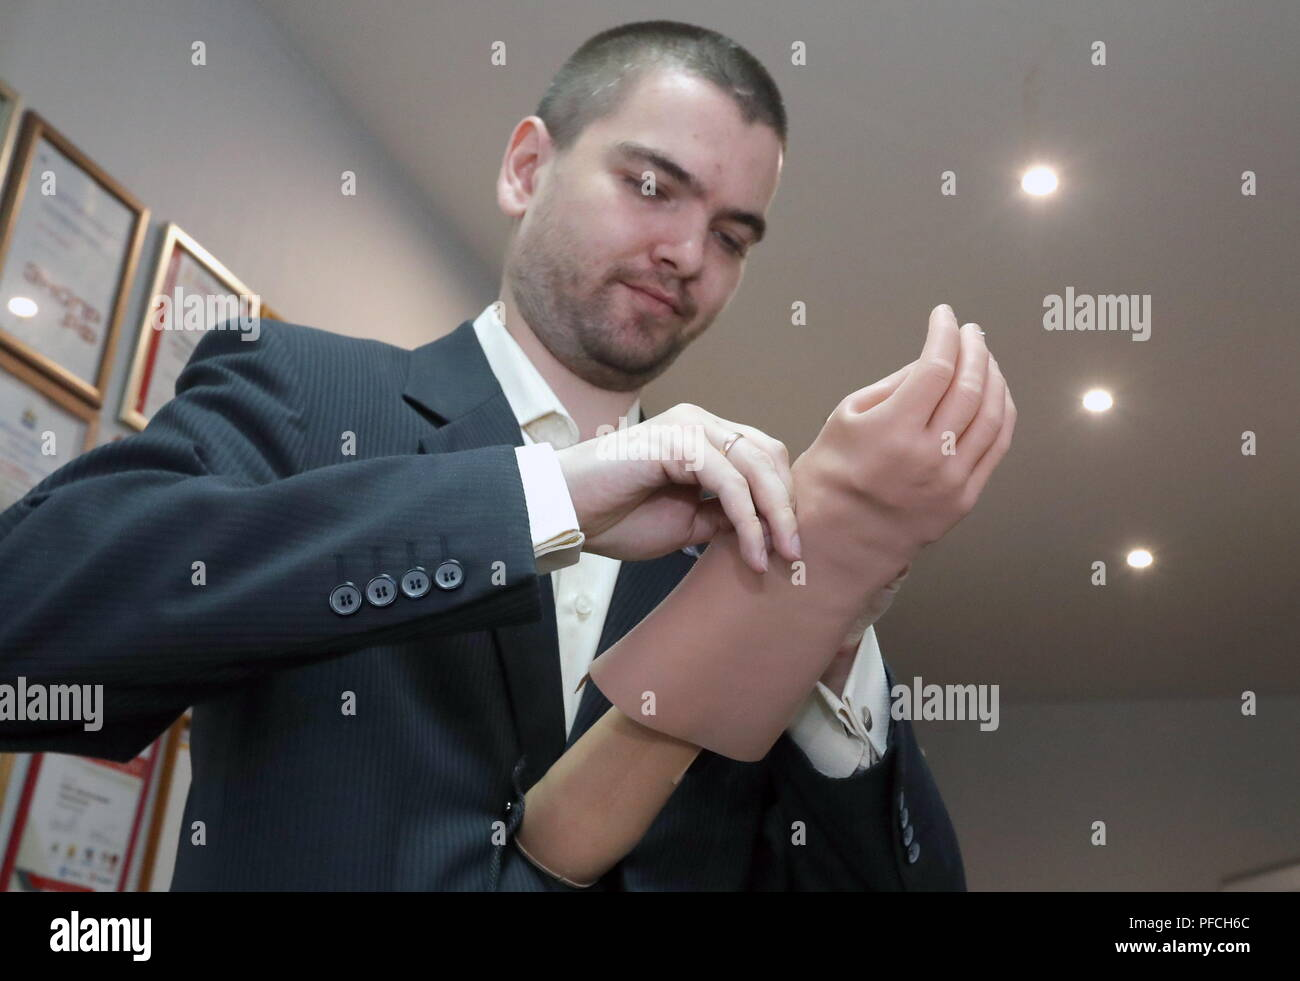 Veliky Novgorod, Russia. 21st Aug, 2018. VELIKY NOVGOROD, RUSSIA - AUGUST 21, 2018: Veliky Novgorod's Tekhbionik scientific research company led by engineer Stanislav Muravyov (pictured) has developed a modular bionic prosthetic hand for Maria Gaidukova, 9, born with a congenital hand malformation; unparalleled in Russia, the prosthesis features three different grip patterns controlled by electrical impulses in an operator's muscles. Alexander Demianchuk/TASS Credit: ITAR-TASS News Agency/Alamy Live News Stock Photo